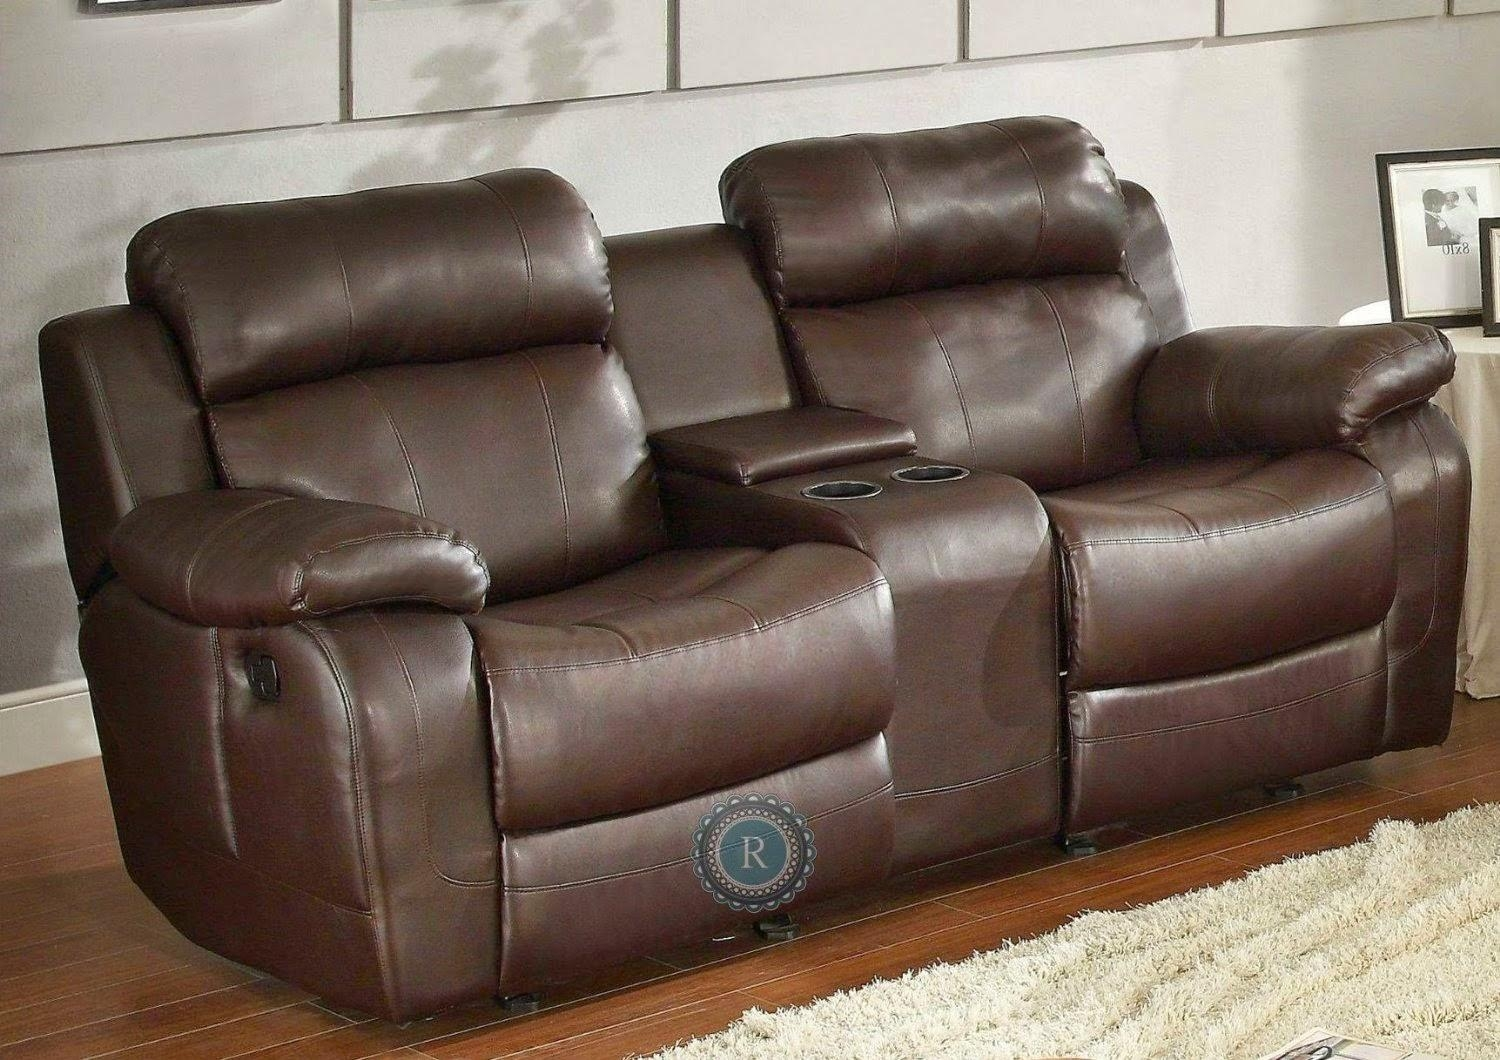 Sofas Center : Beautifulclining Sofa With Center Console Gallery With Sofas With Console (Image 10 of 20)